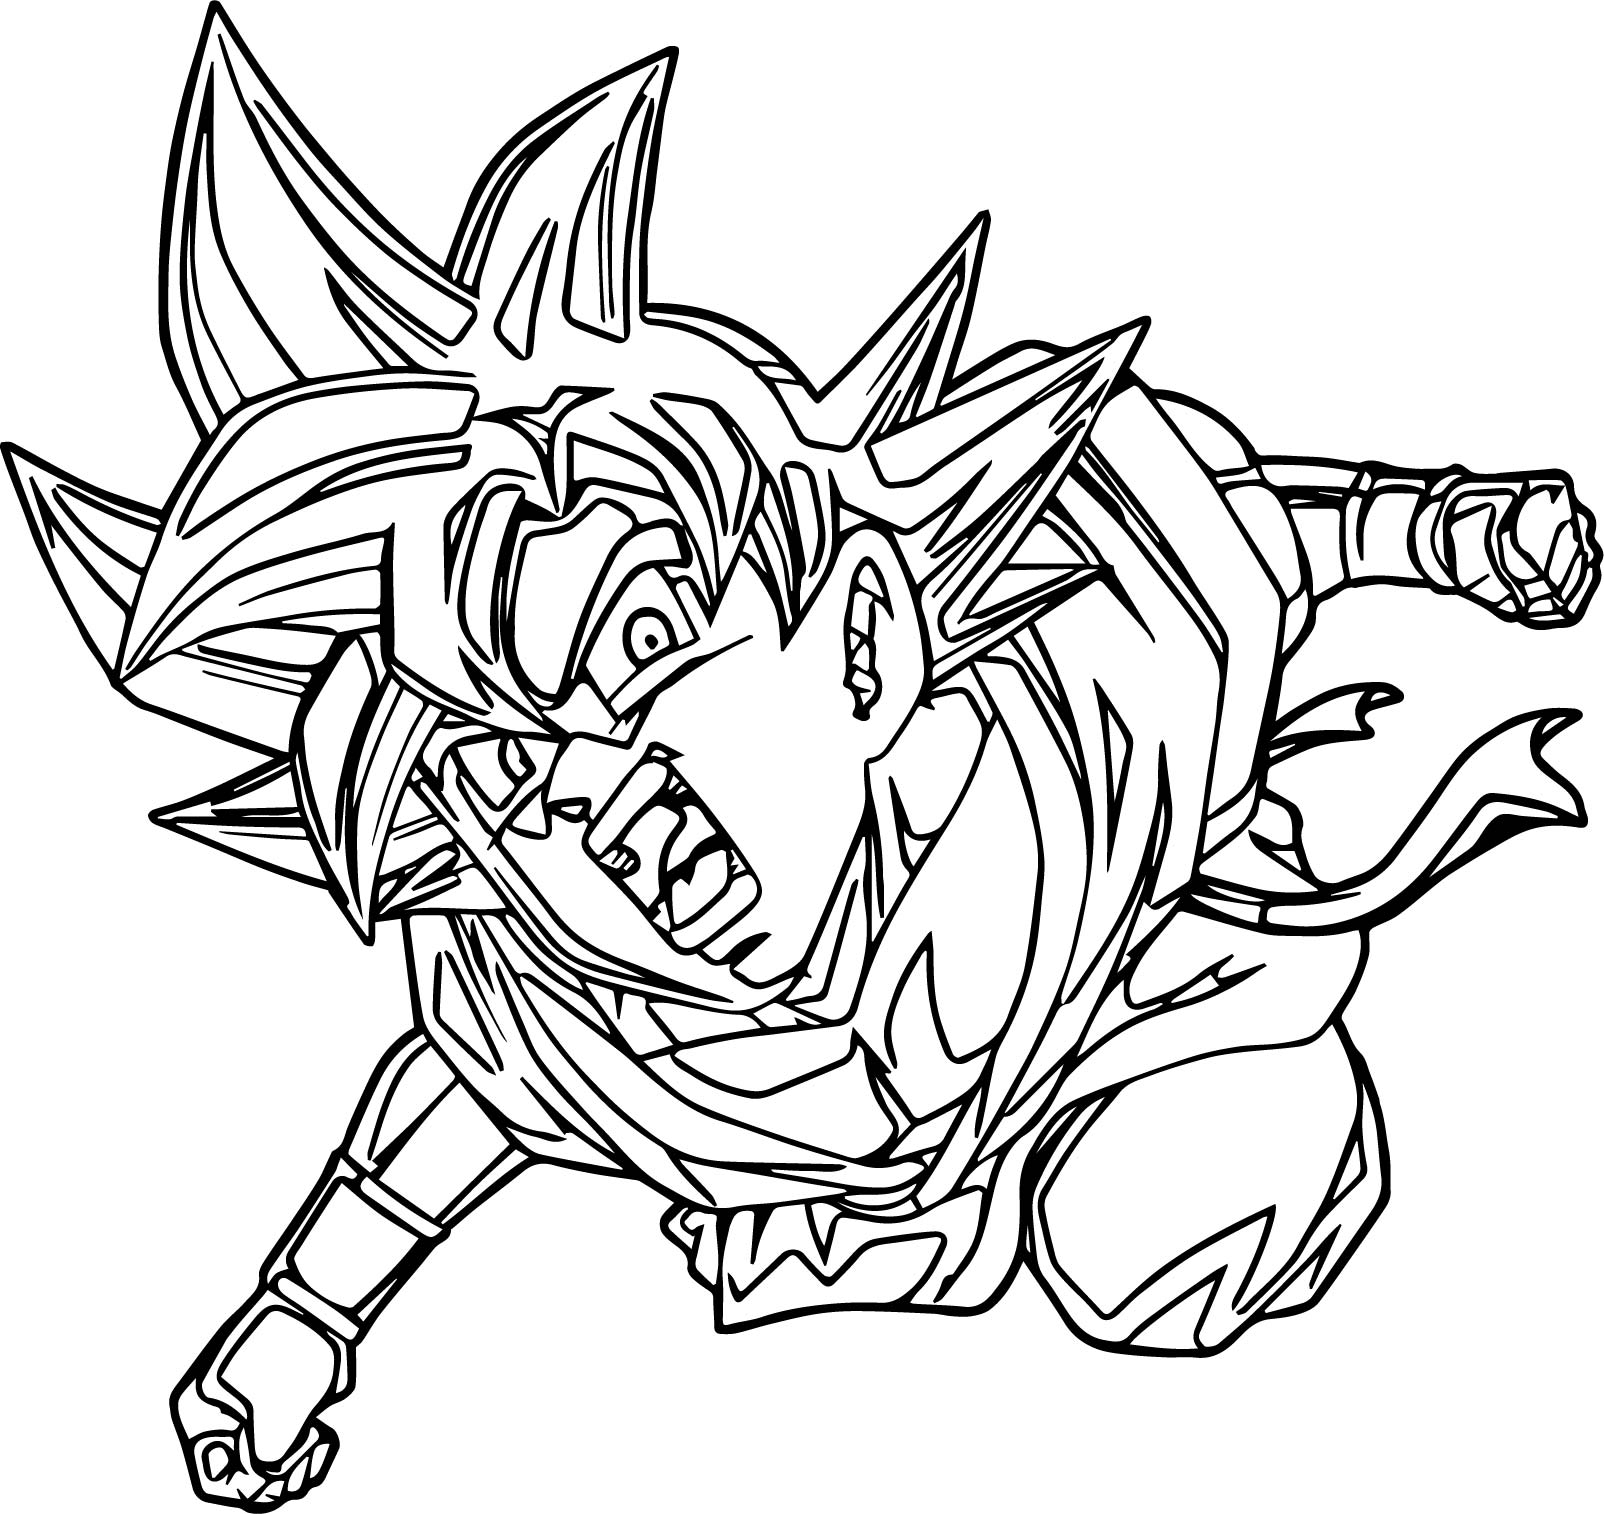 Goku Side Punch Coloring Page